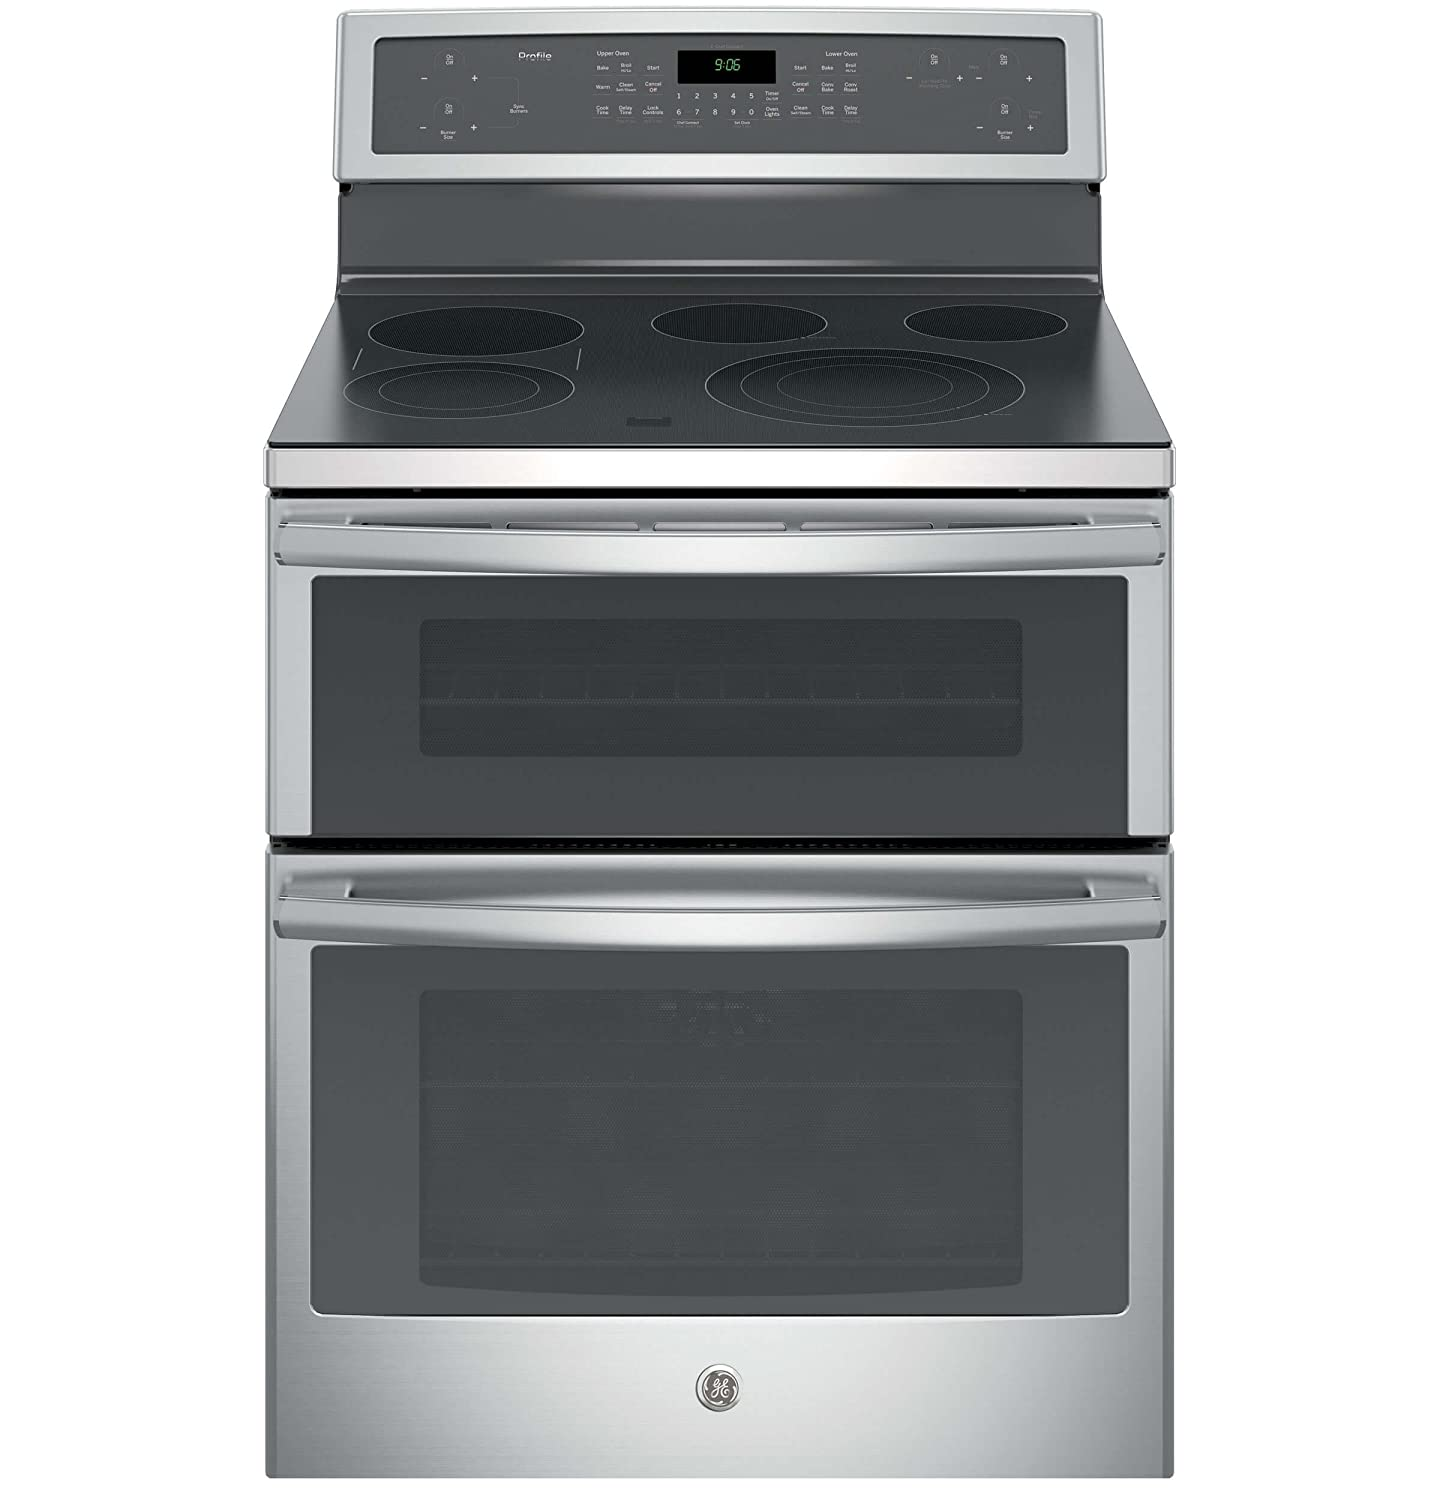 "GE PB960SJSS Profile 30"" Stainless Steel Electric Smoothtop Double Oven Range - Convection"